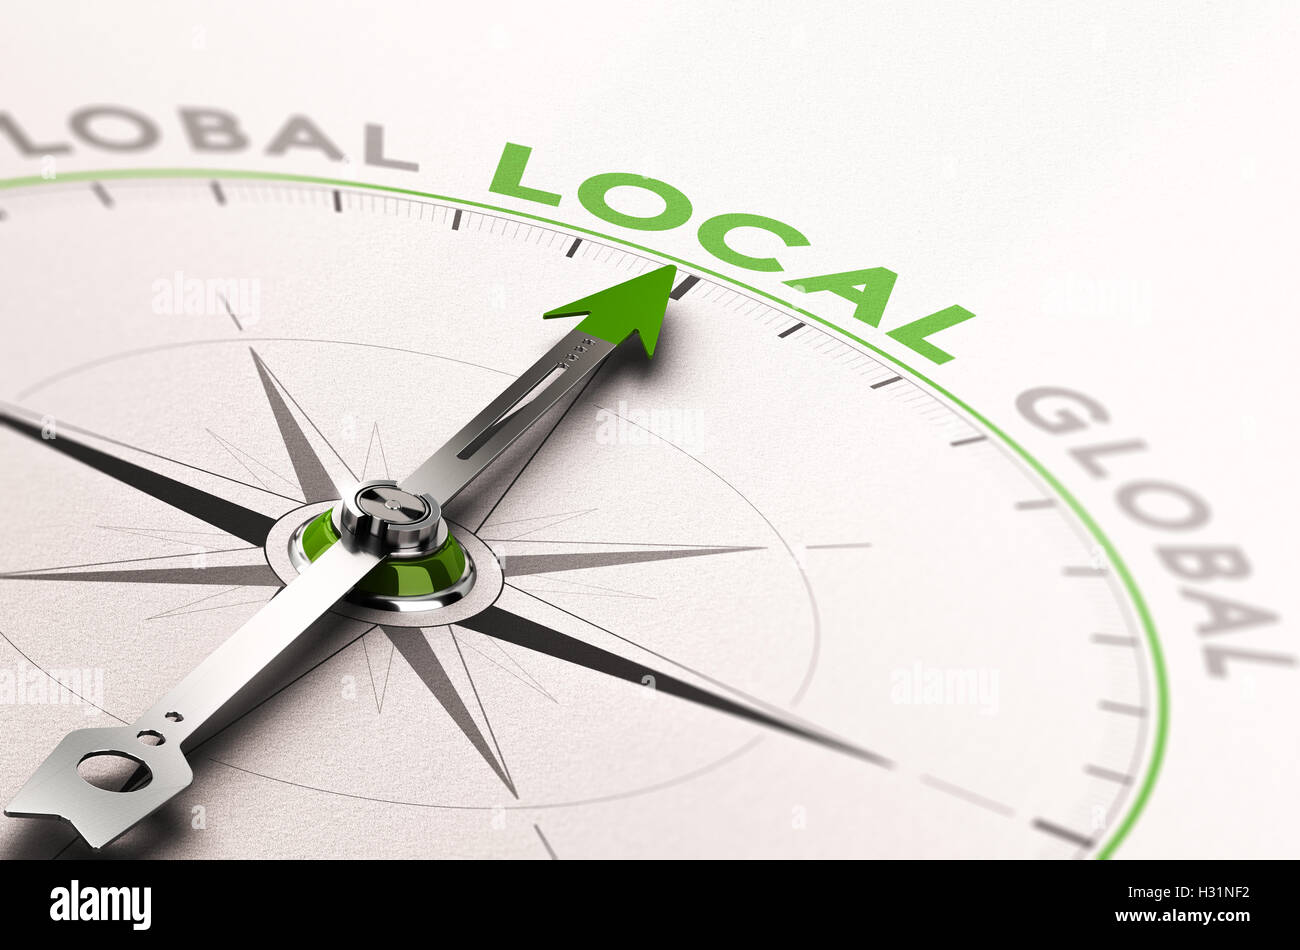 3D illustration of a compass with needle pointing the word local business. Concept of an ethical economy - Stock Image